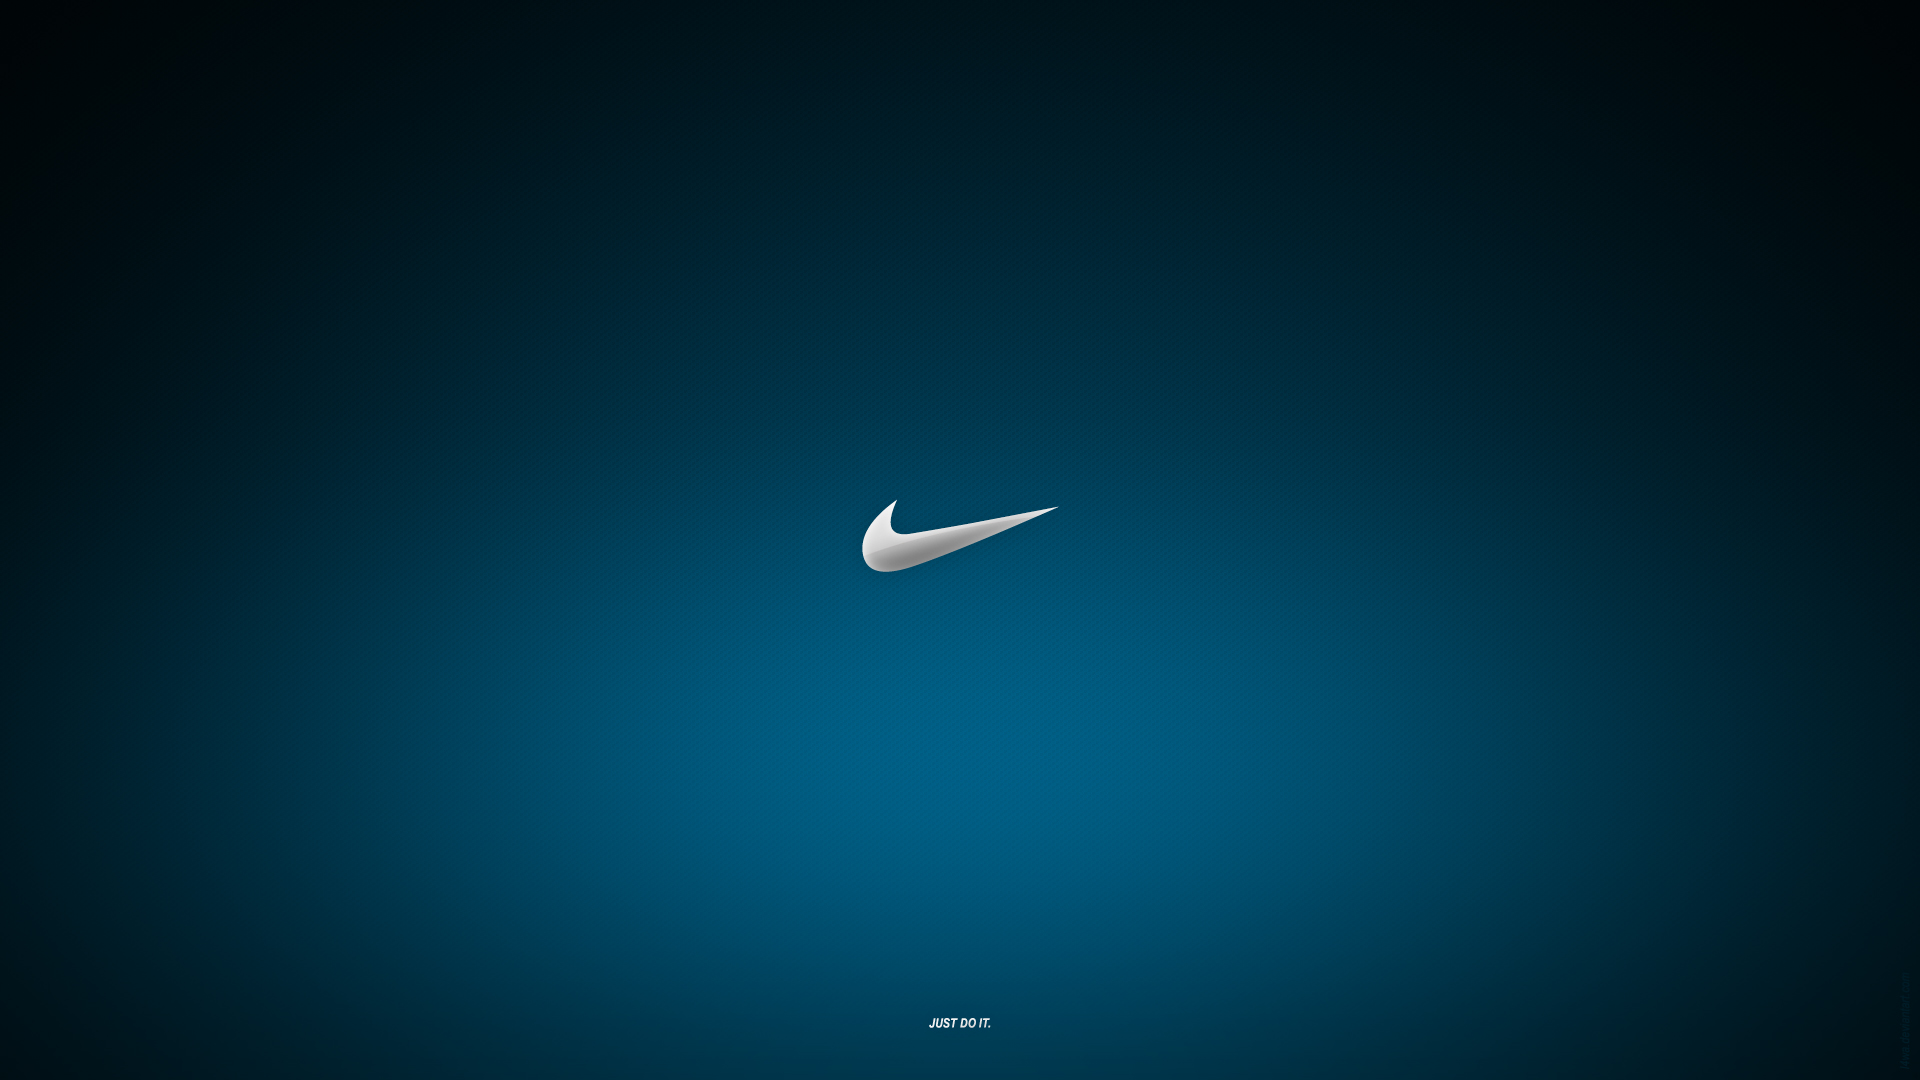 Cool Nike Logo Wallpaper HD 1920x1080